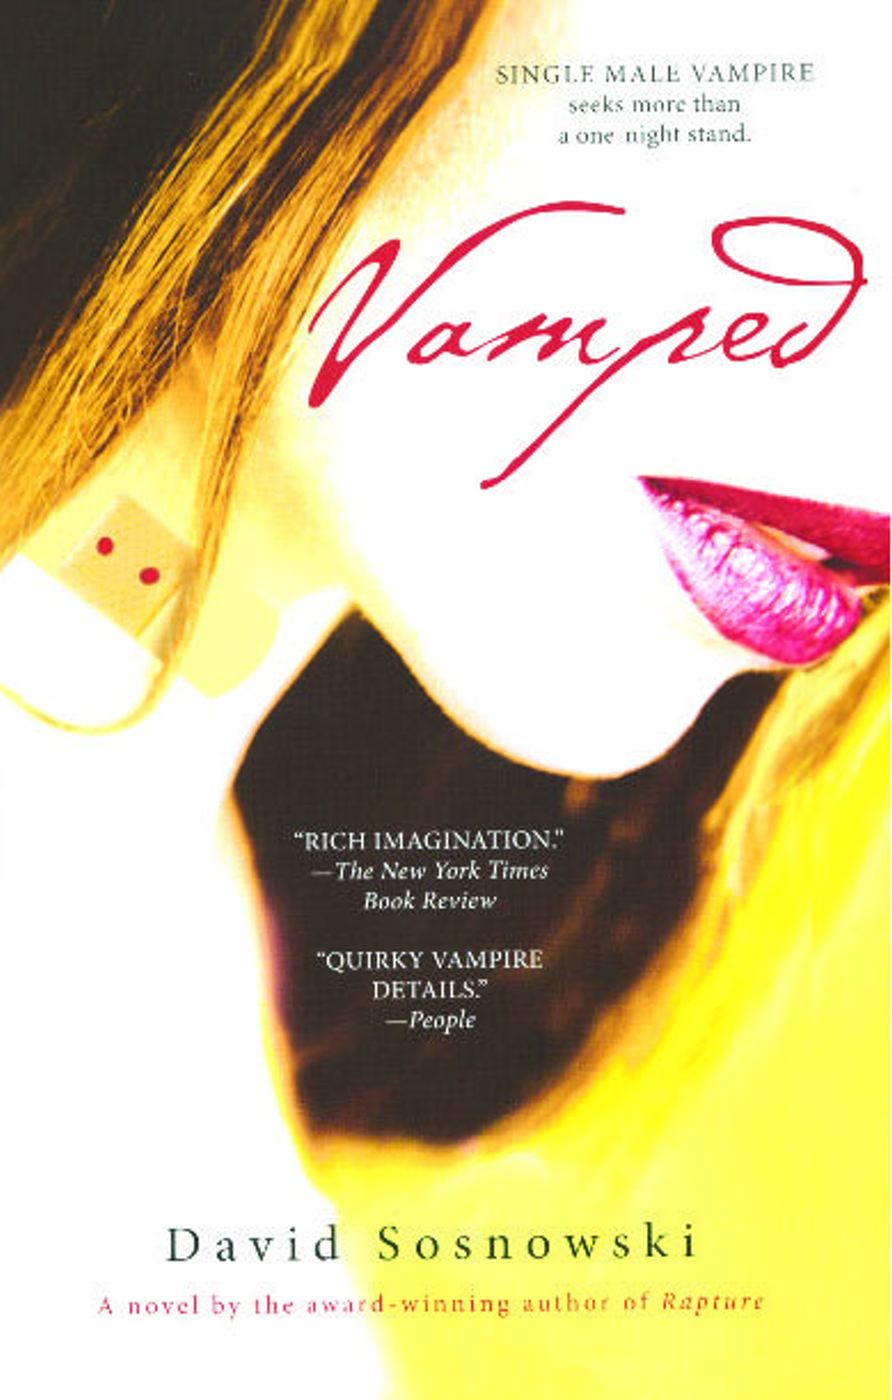 Vamped By: David Sosnowski